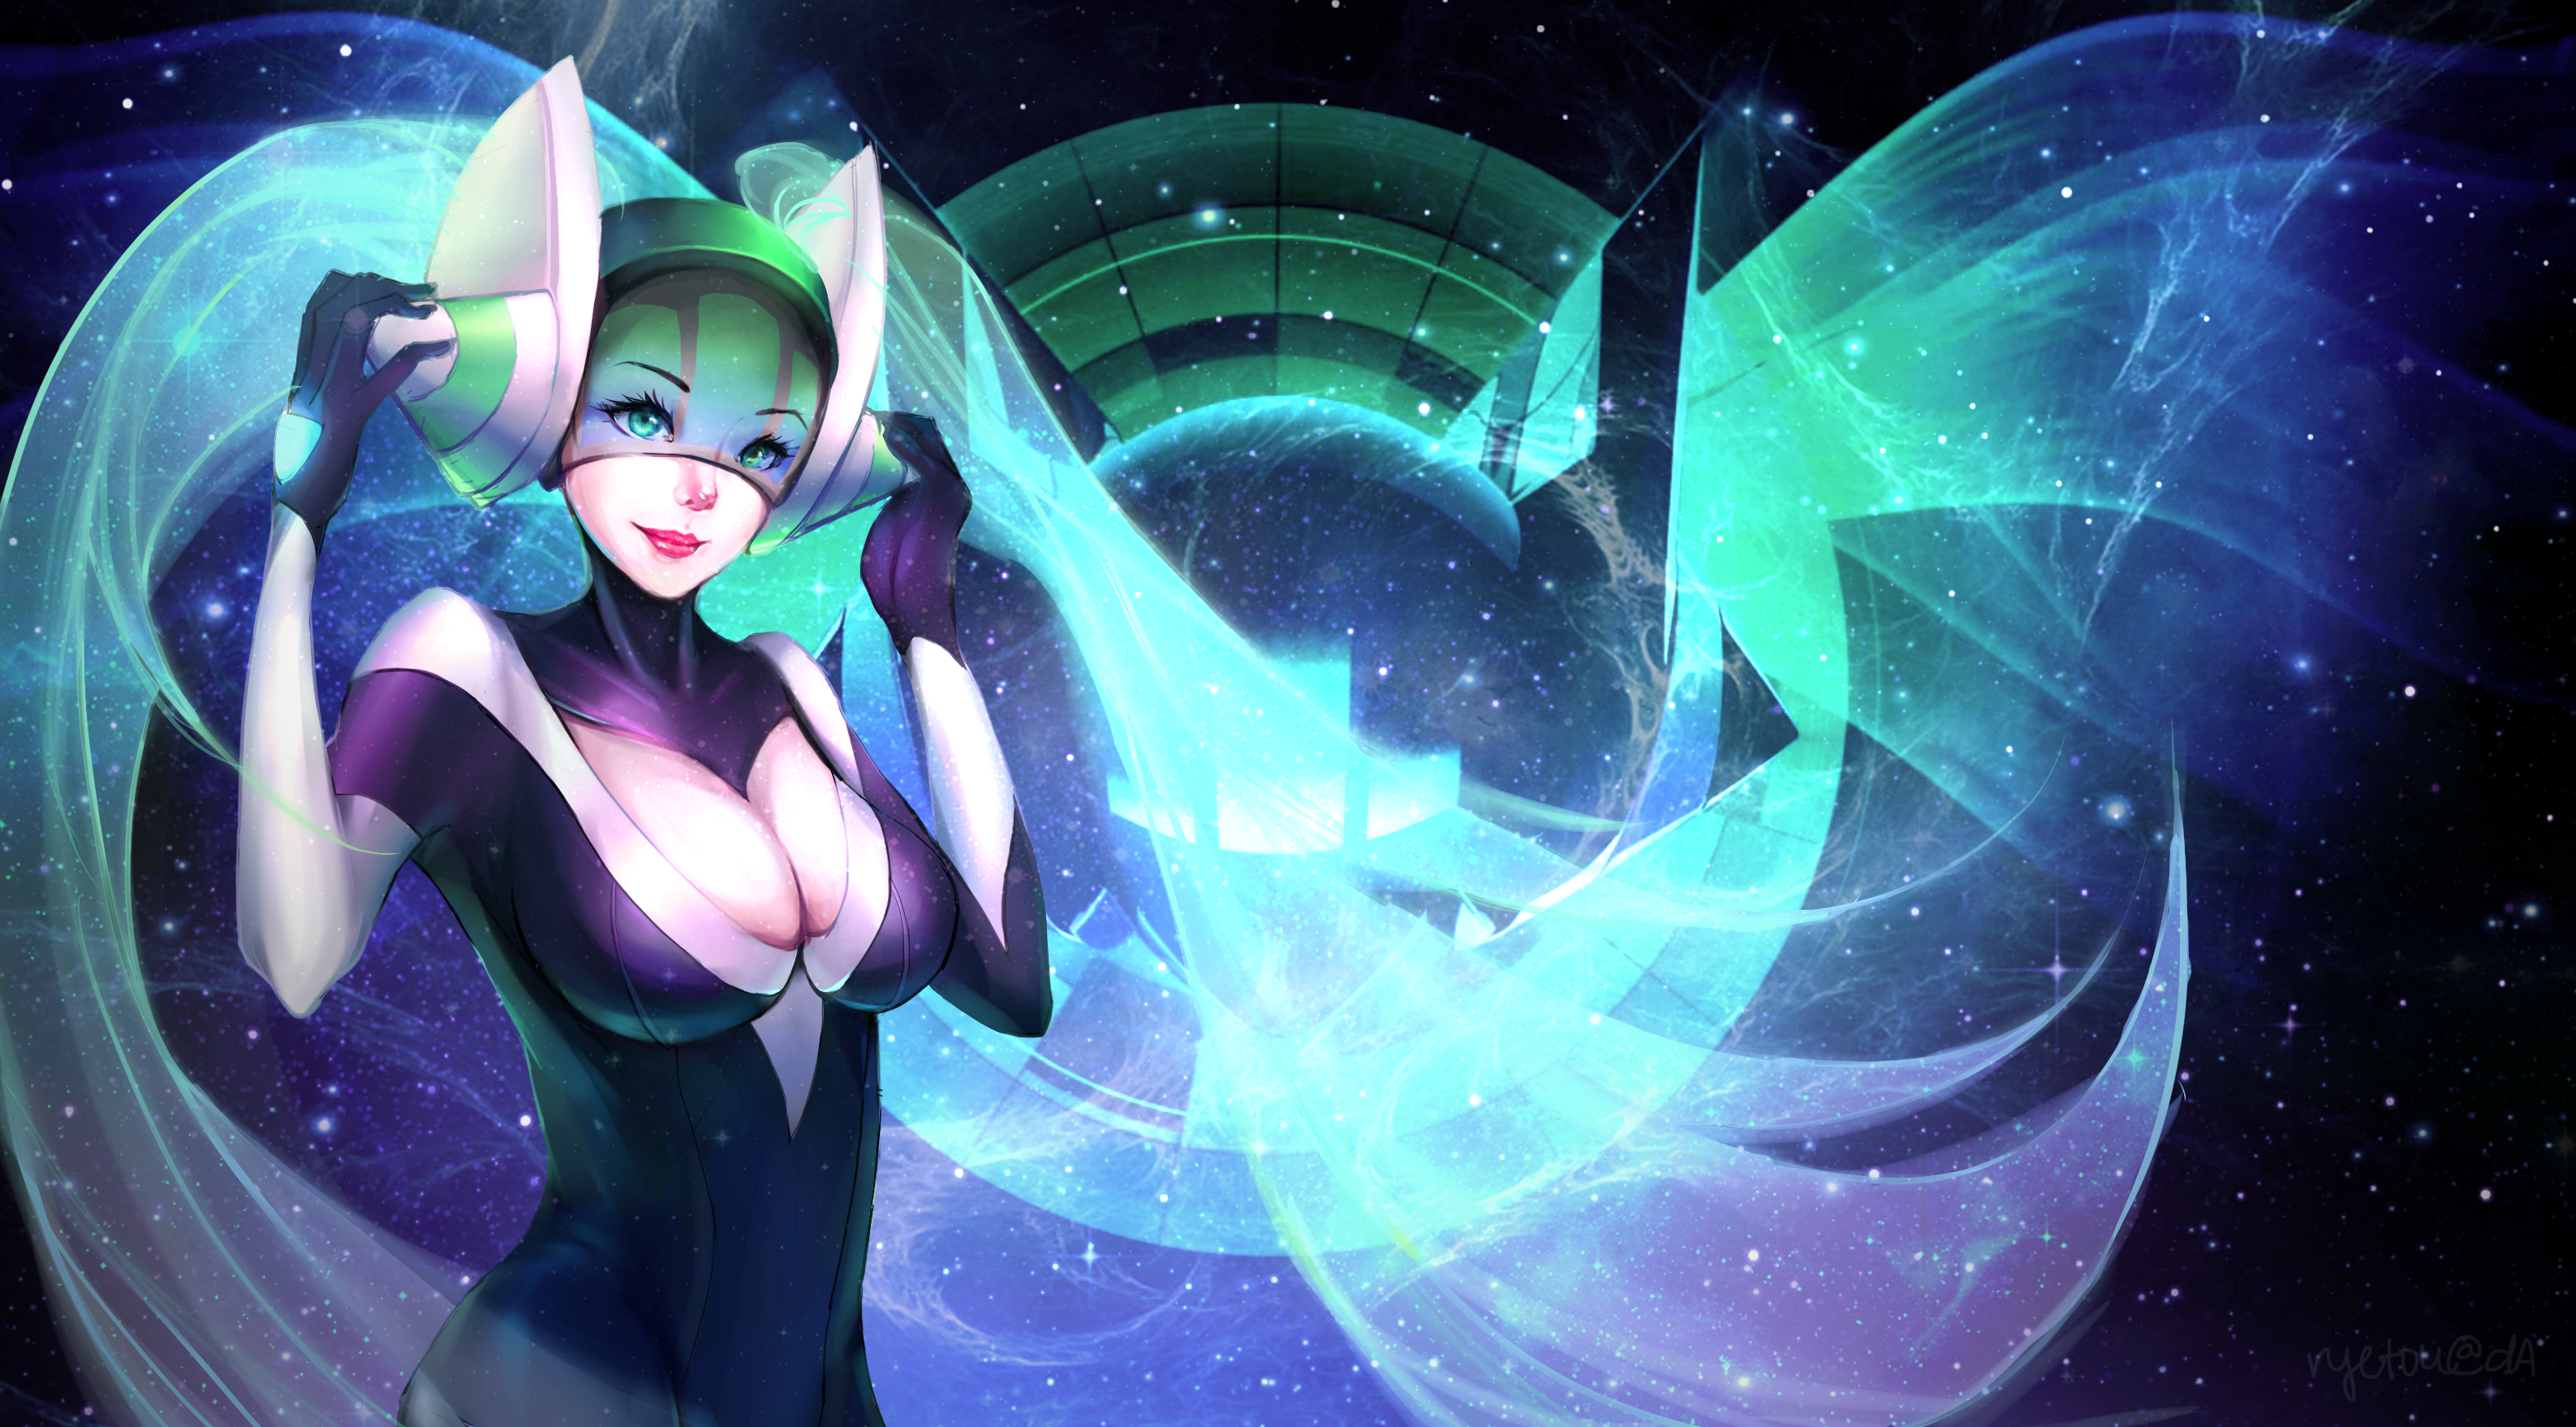 Kinetic DJ Sona Wallpaper